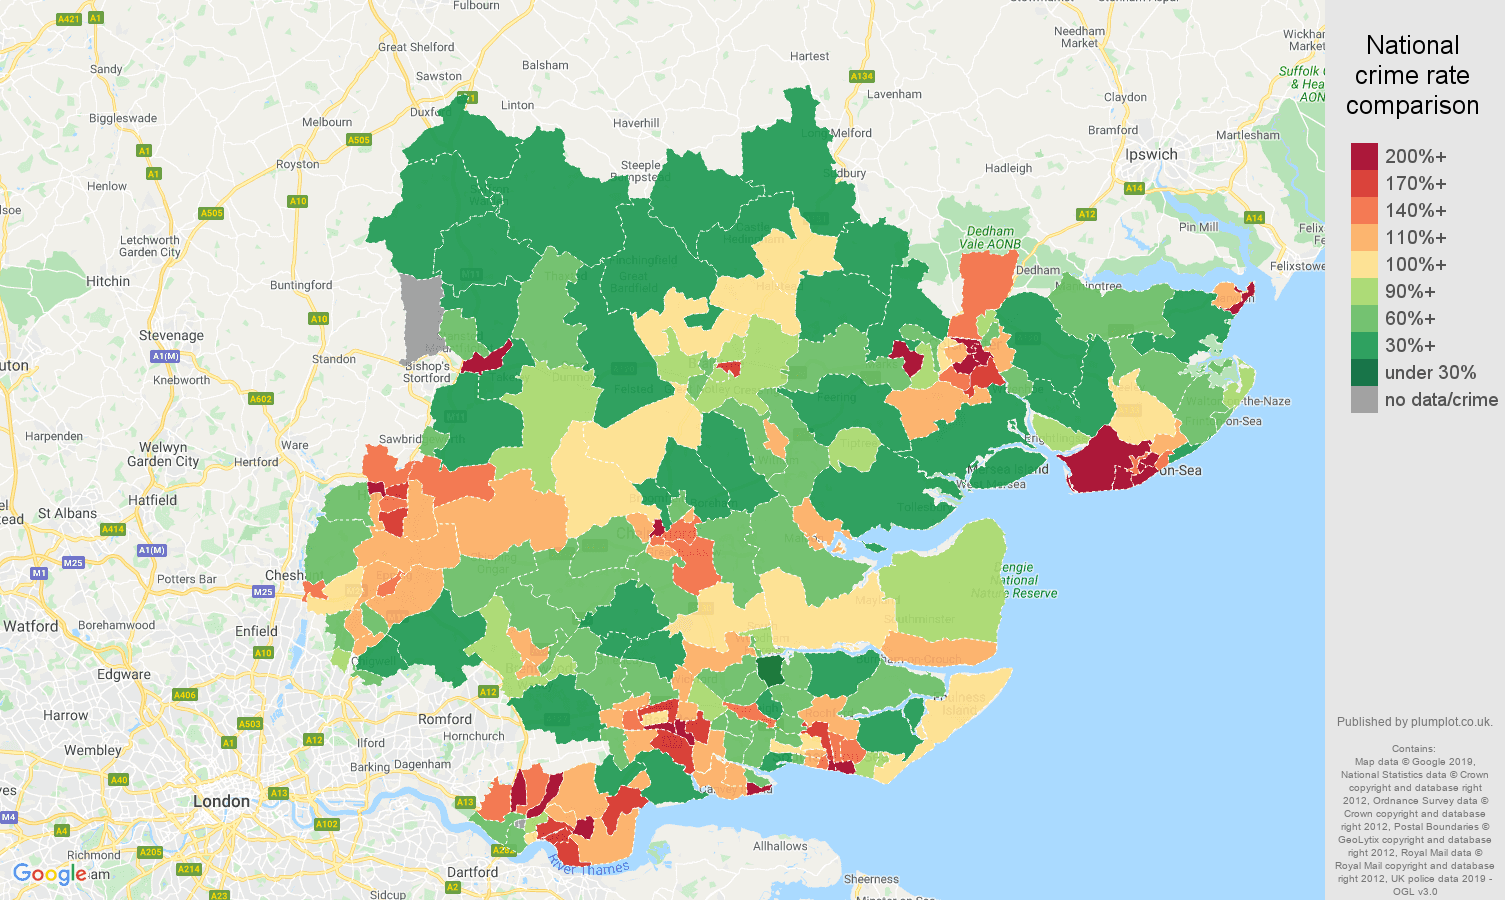 Essex public order crime rate comparison map